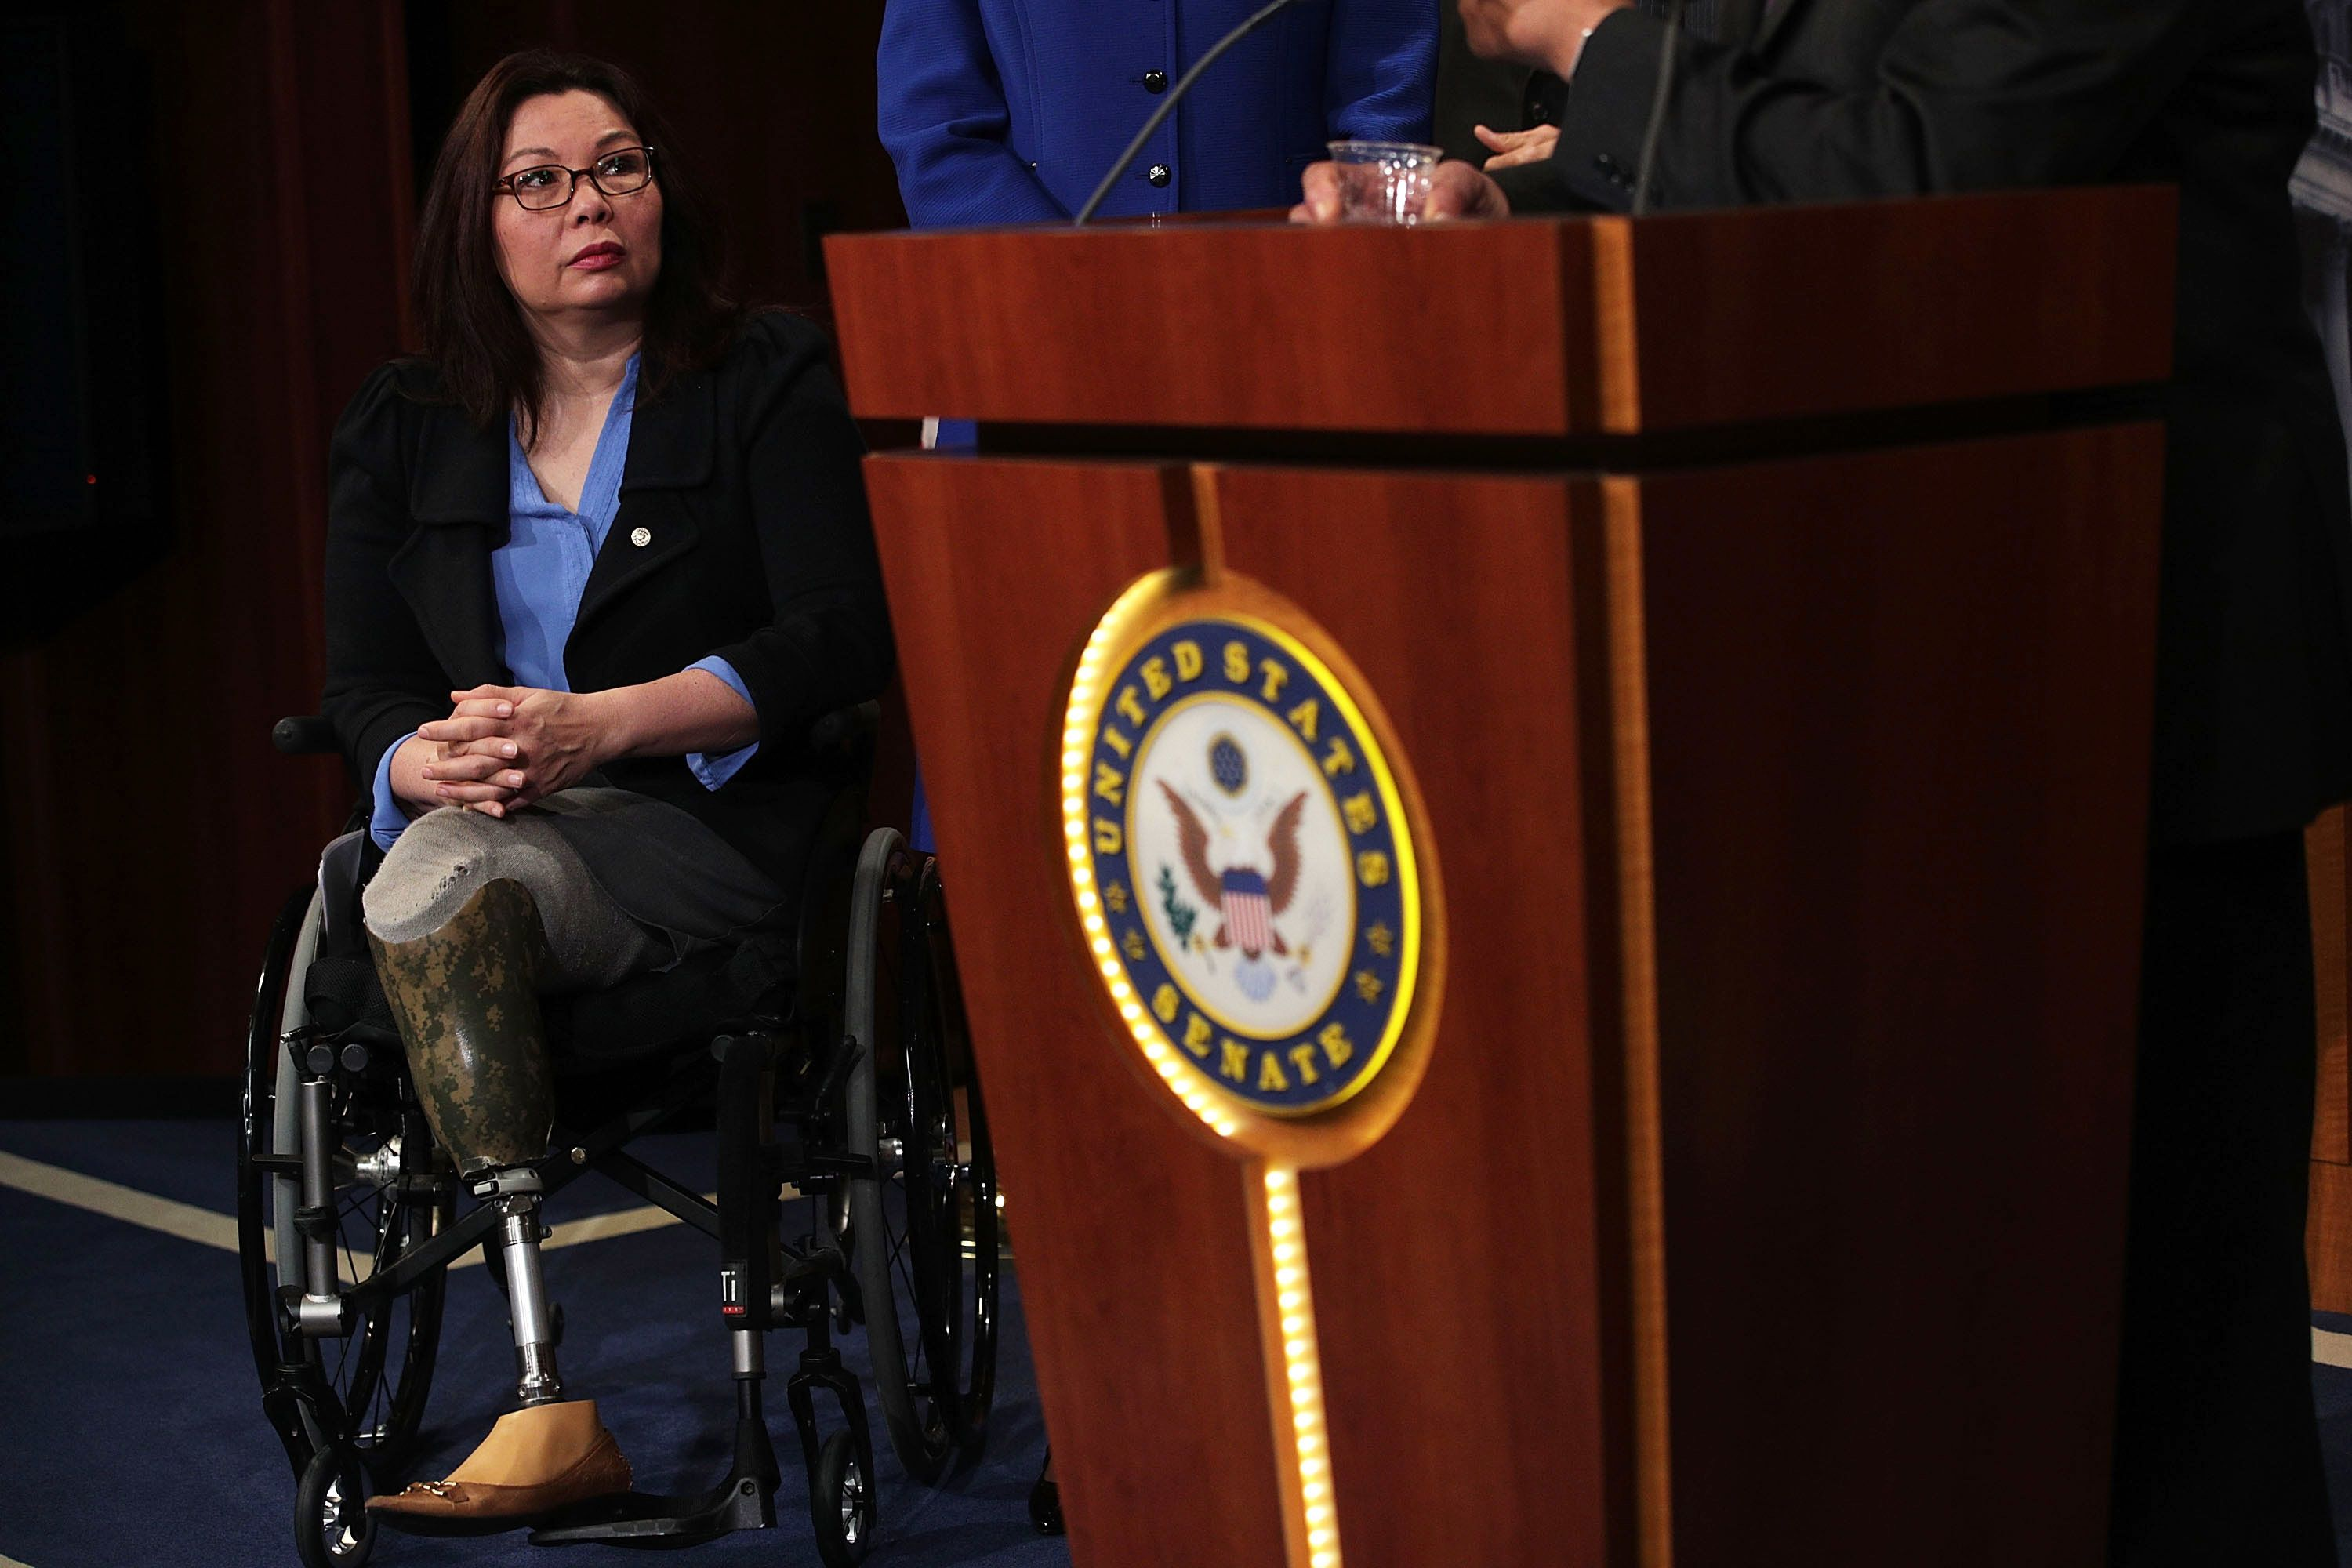 WASHINGTON, DC - APRIL 27:  U.S. Sen. Tammy Duckworth (D-IL) listens during a news conference at the Capitol April 27, 2017 in Washington, DC. Congressional Democrats held a news conference to discuss the first 100 days of the Trump presidency.  (Photo by Alex Wong/Getty Images)